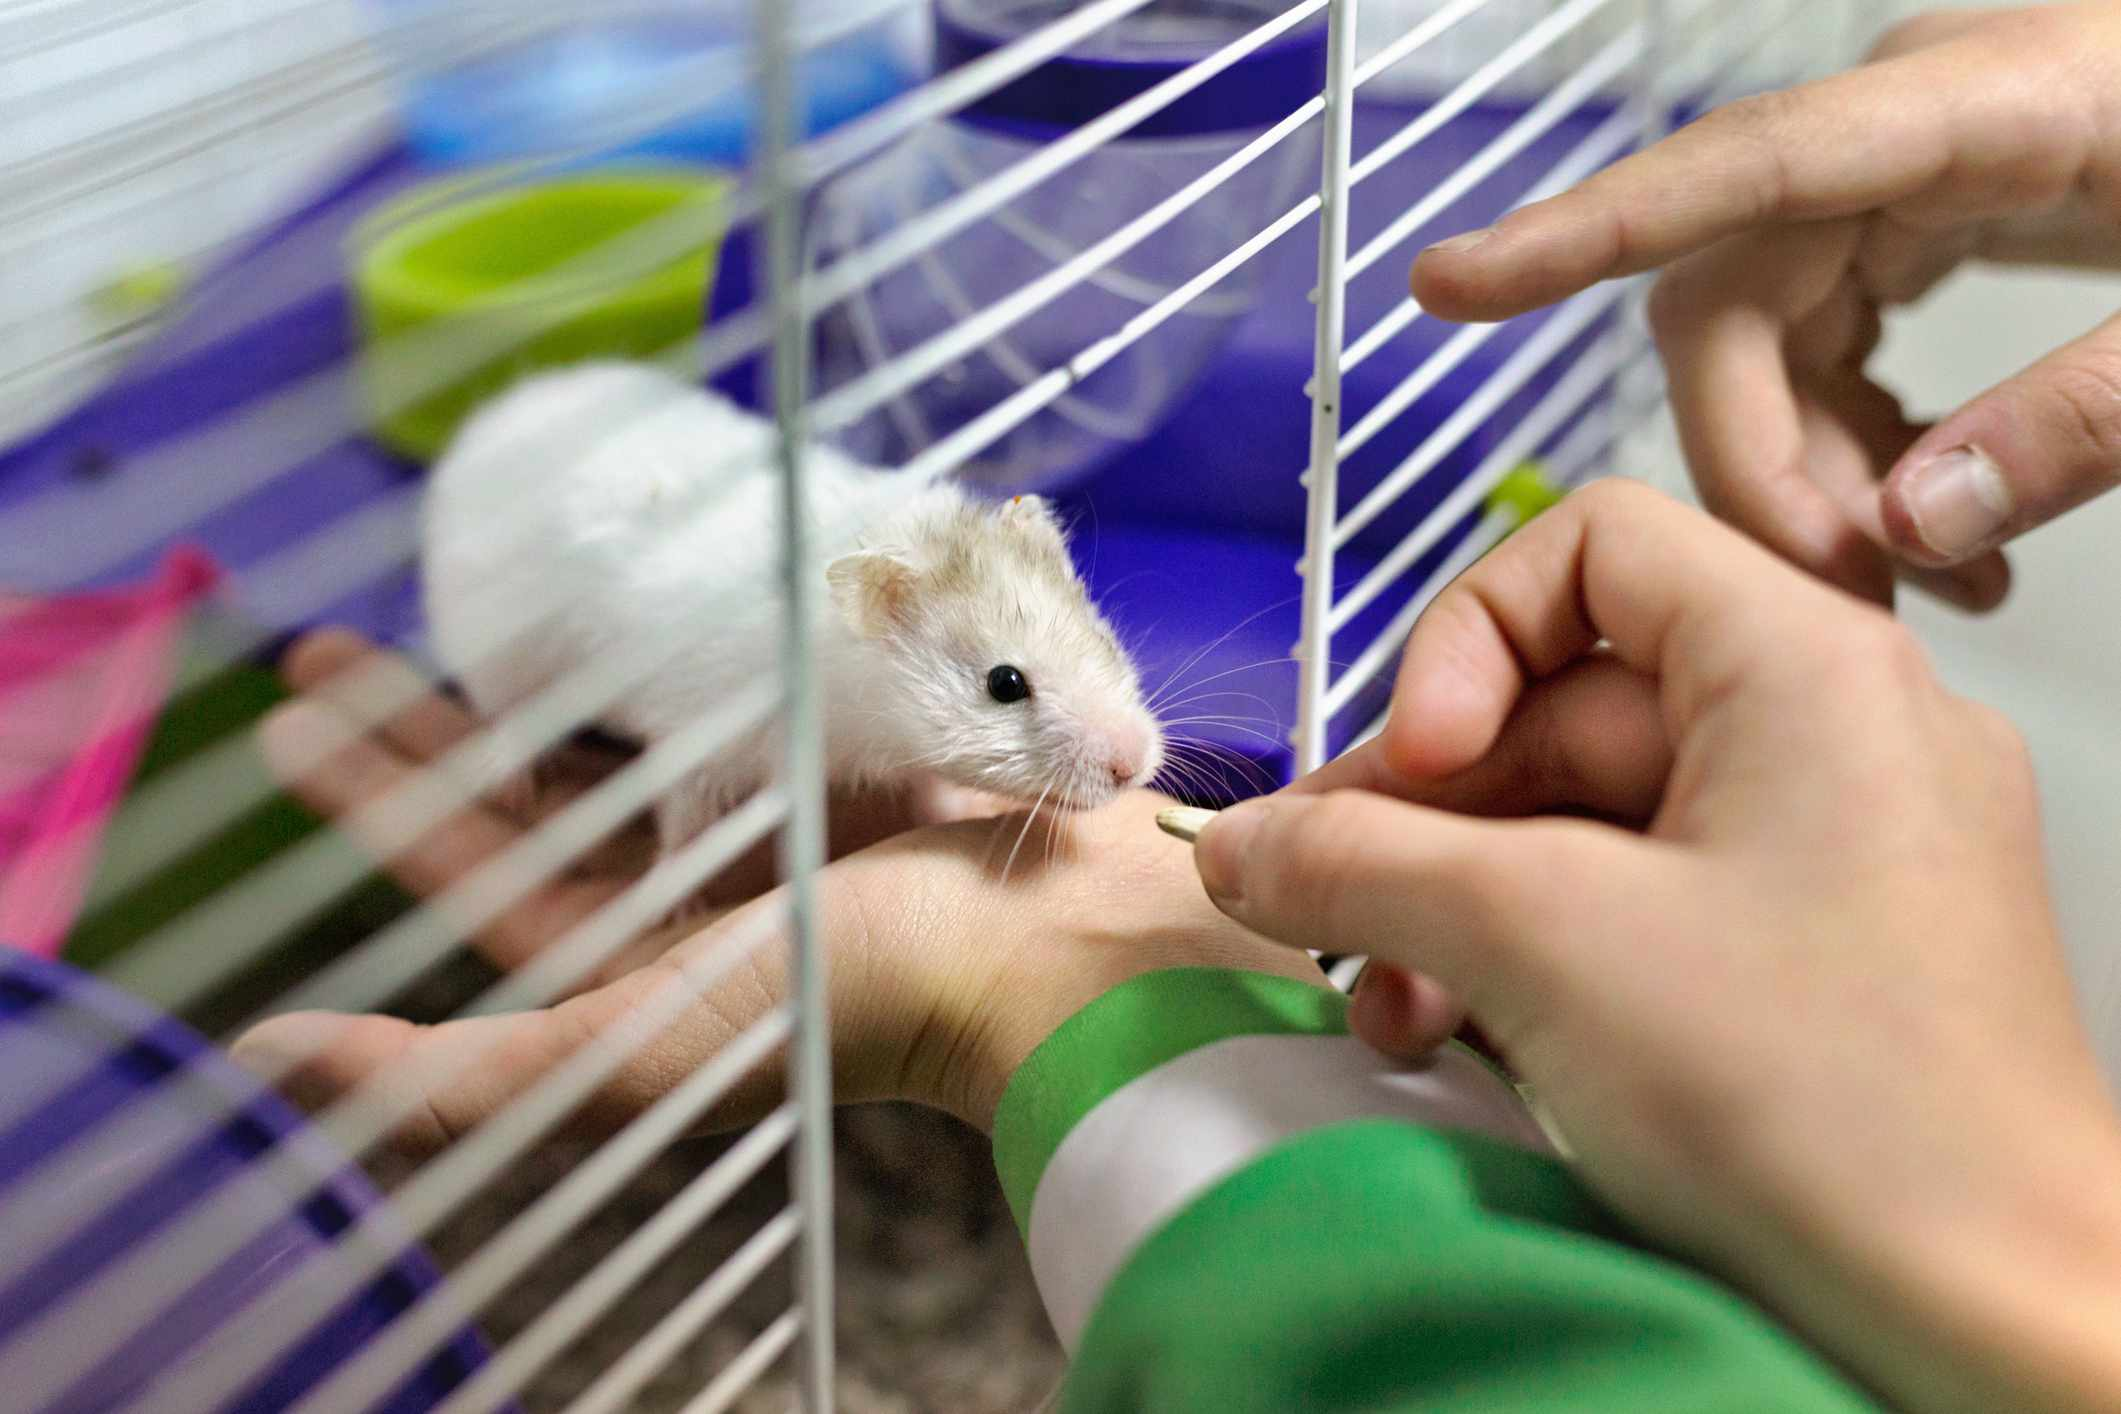 Hamster being handled in cage